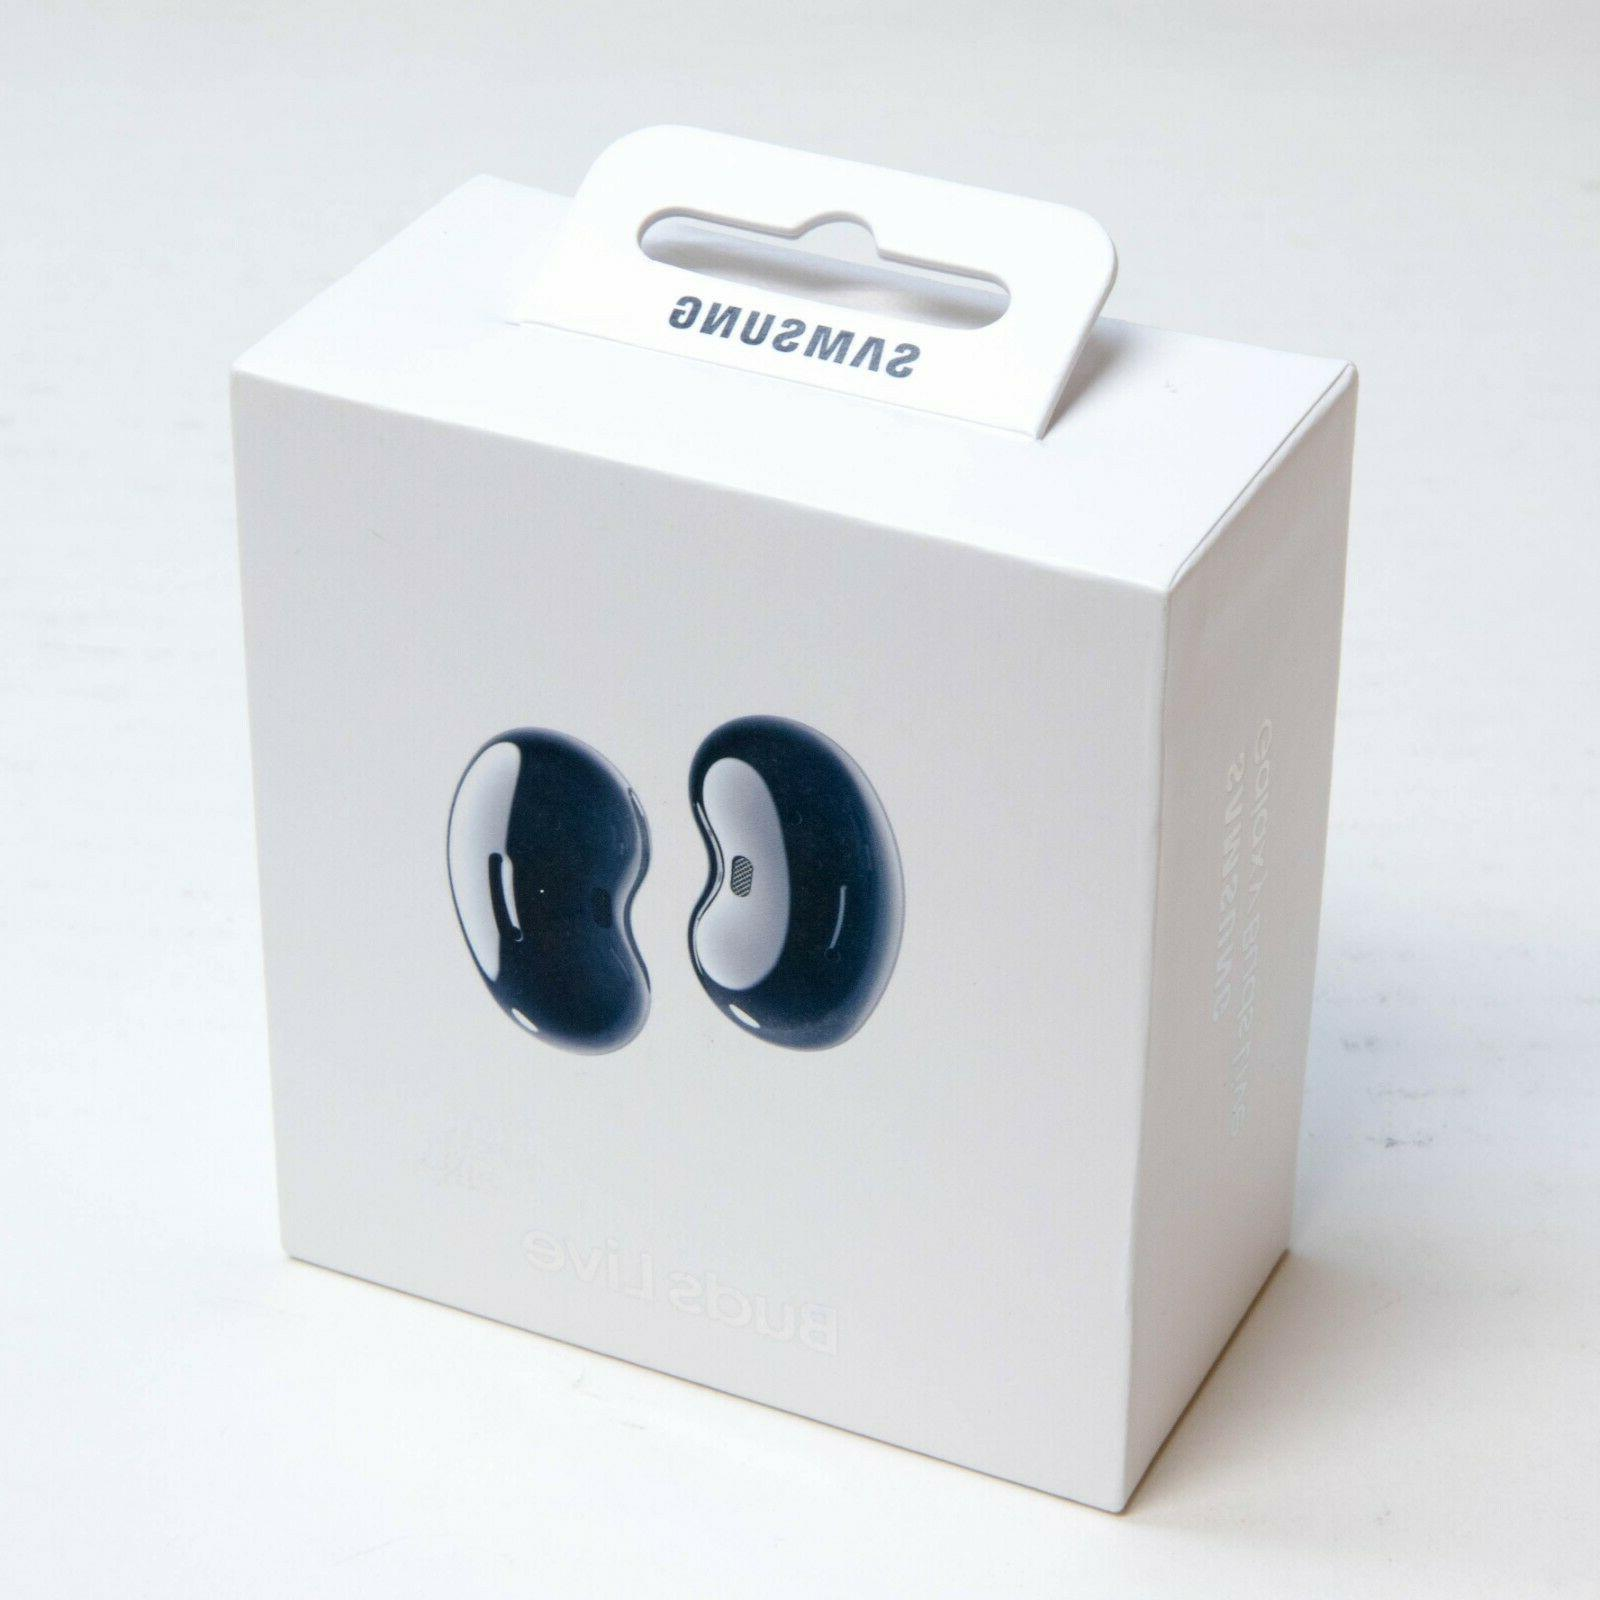 galaxy buds live earbuds active noise cancelling